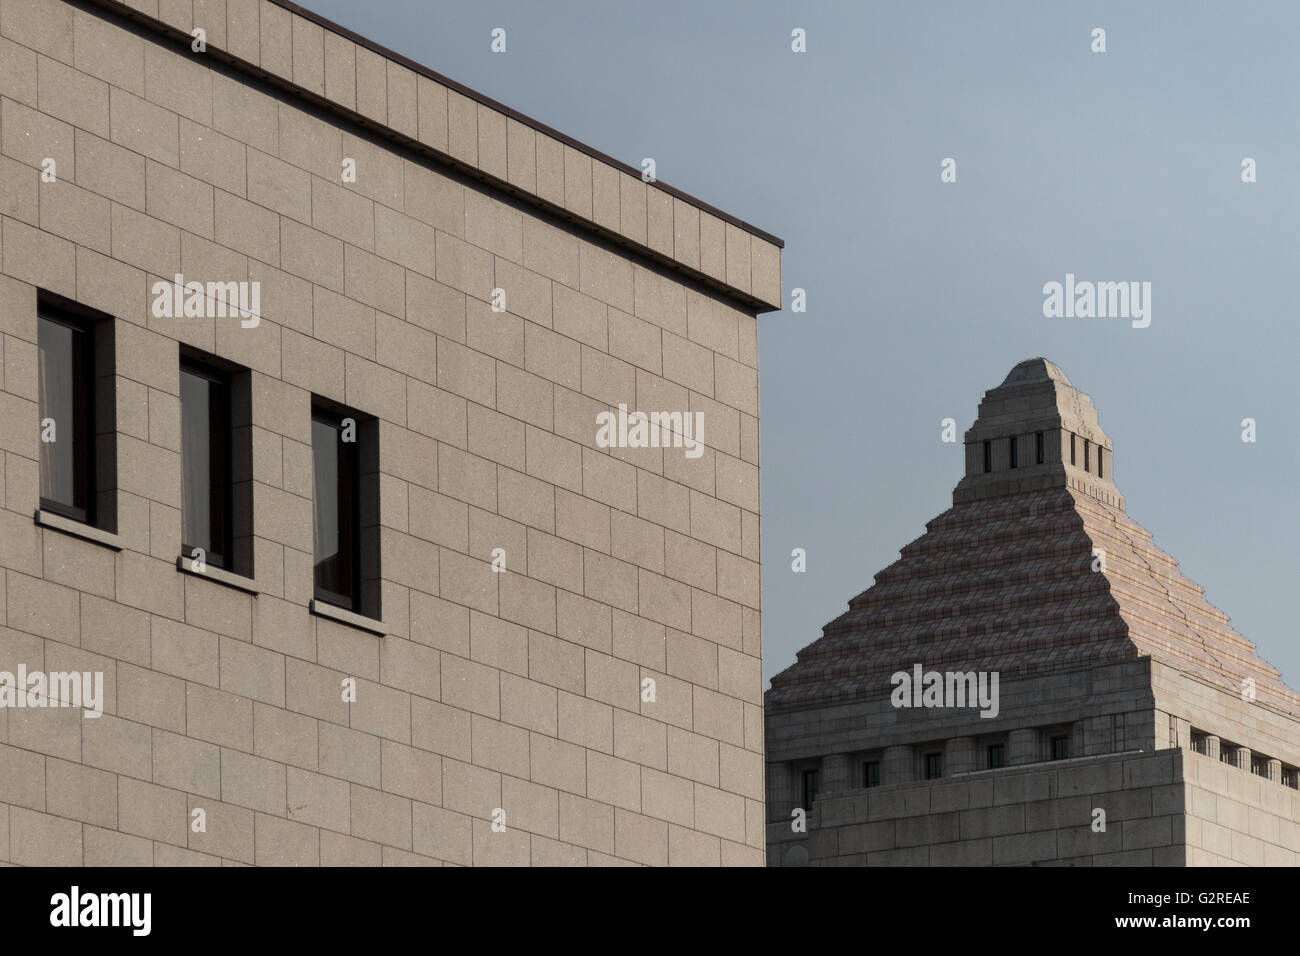 The Japanese Diet (Parliament) building in Nagatacho, Tokyo, Japan. Friday February 5th 2016 - Stock Image